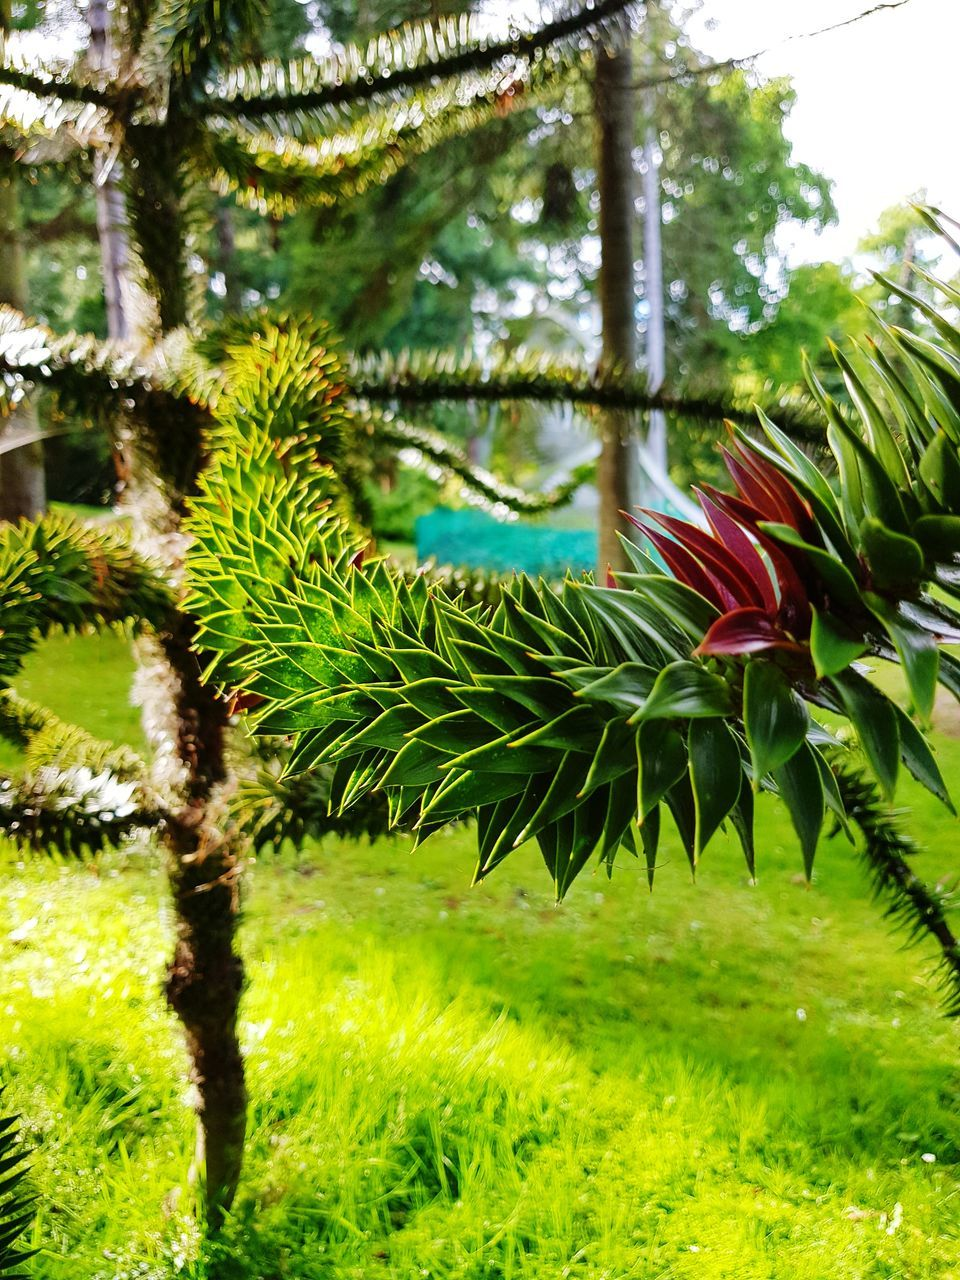 green color, nature, growth, no people, beauty in nature, tree, day, grass, plant, outdoors, close-up, flower, freshness